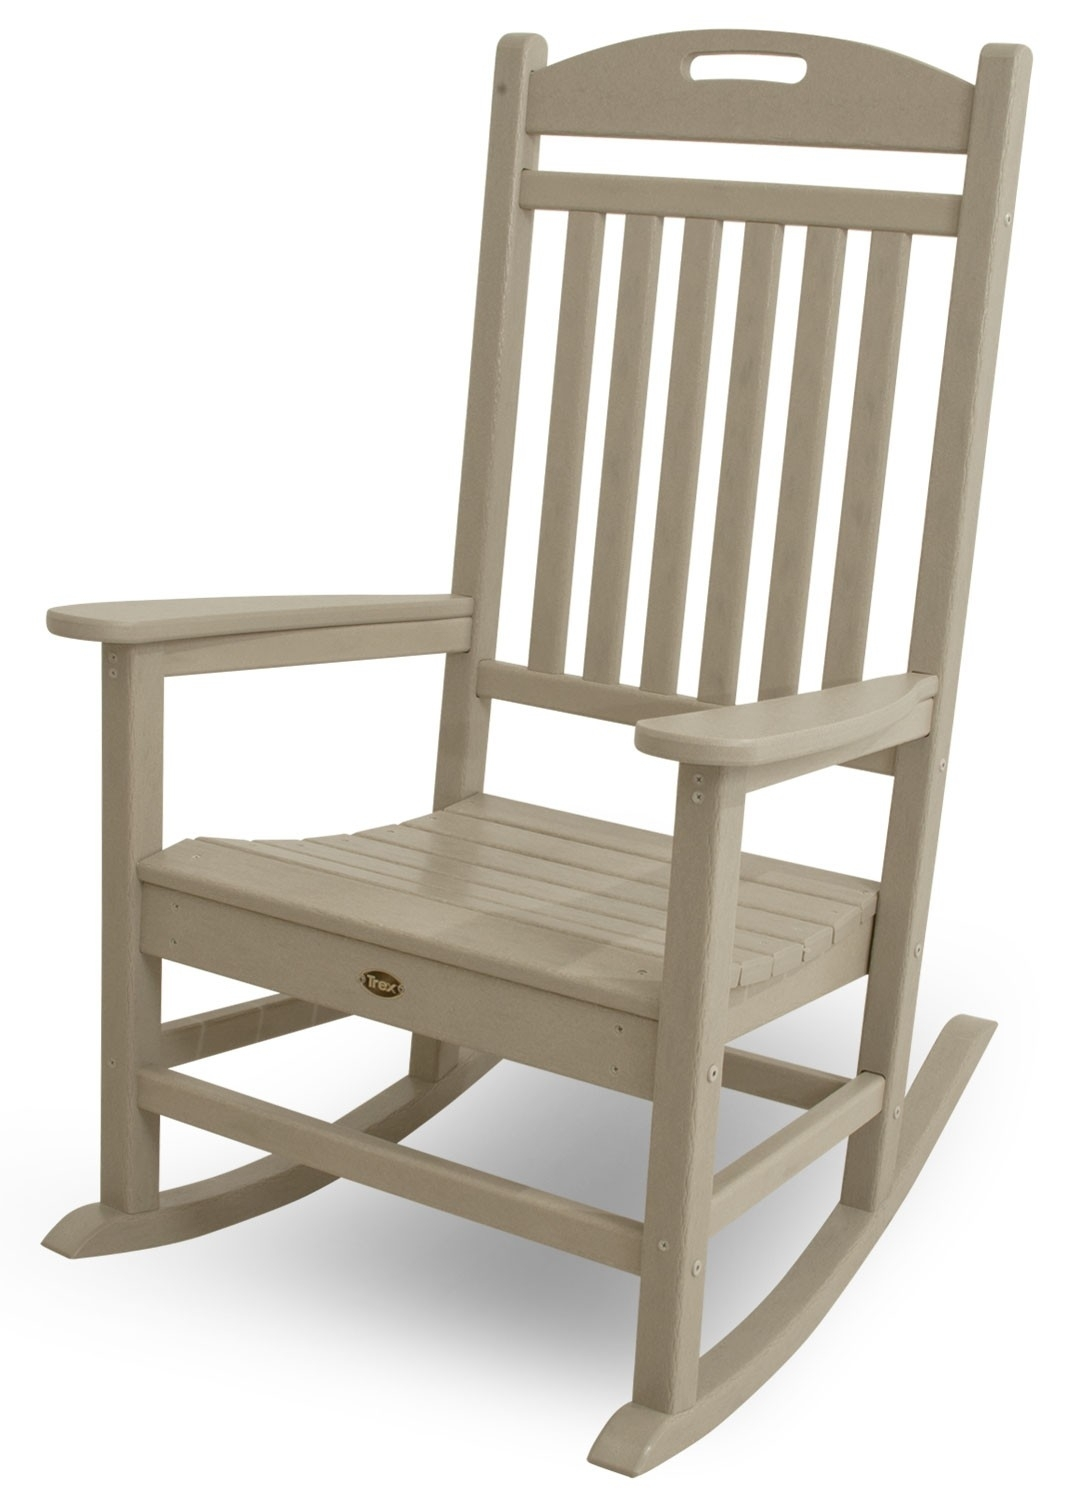 Yacht Club Rocking Chair With Patio Rocking Chairs With Covers (View 14 of 15)